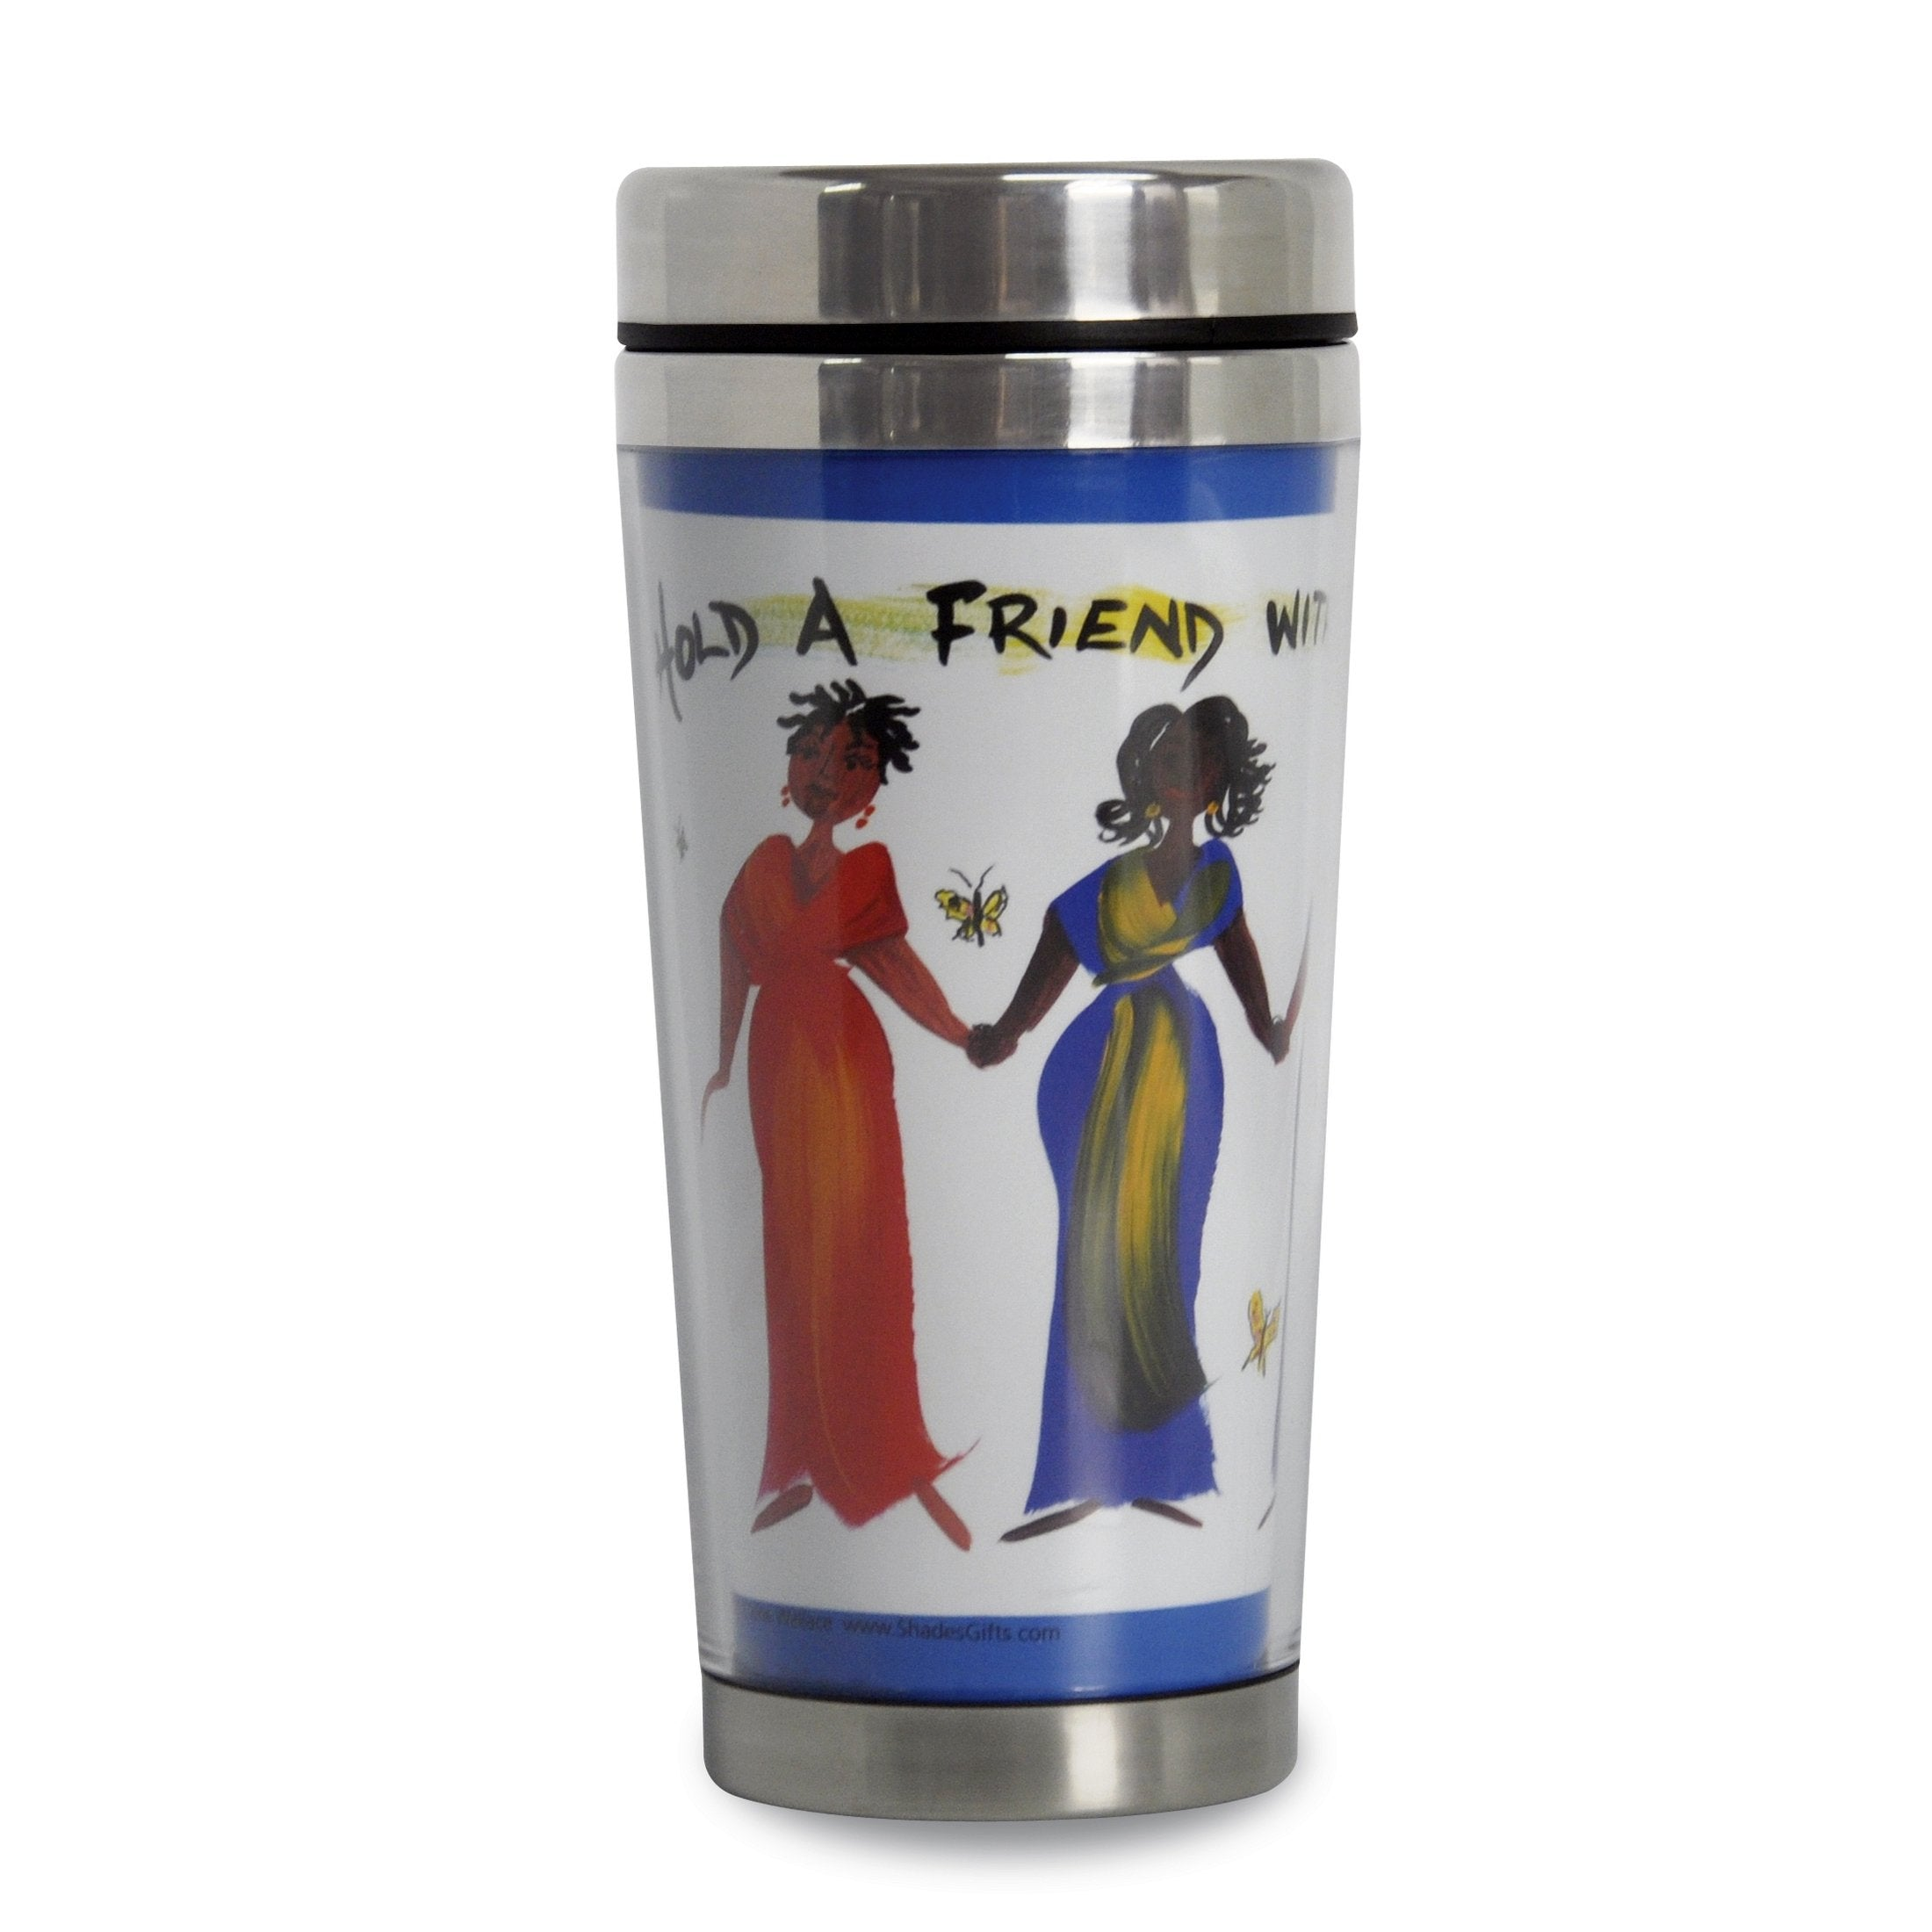 Hold a Friend With Both Your Hands: African American Travel Mug by Cidne Wallace (Front)